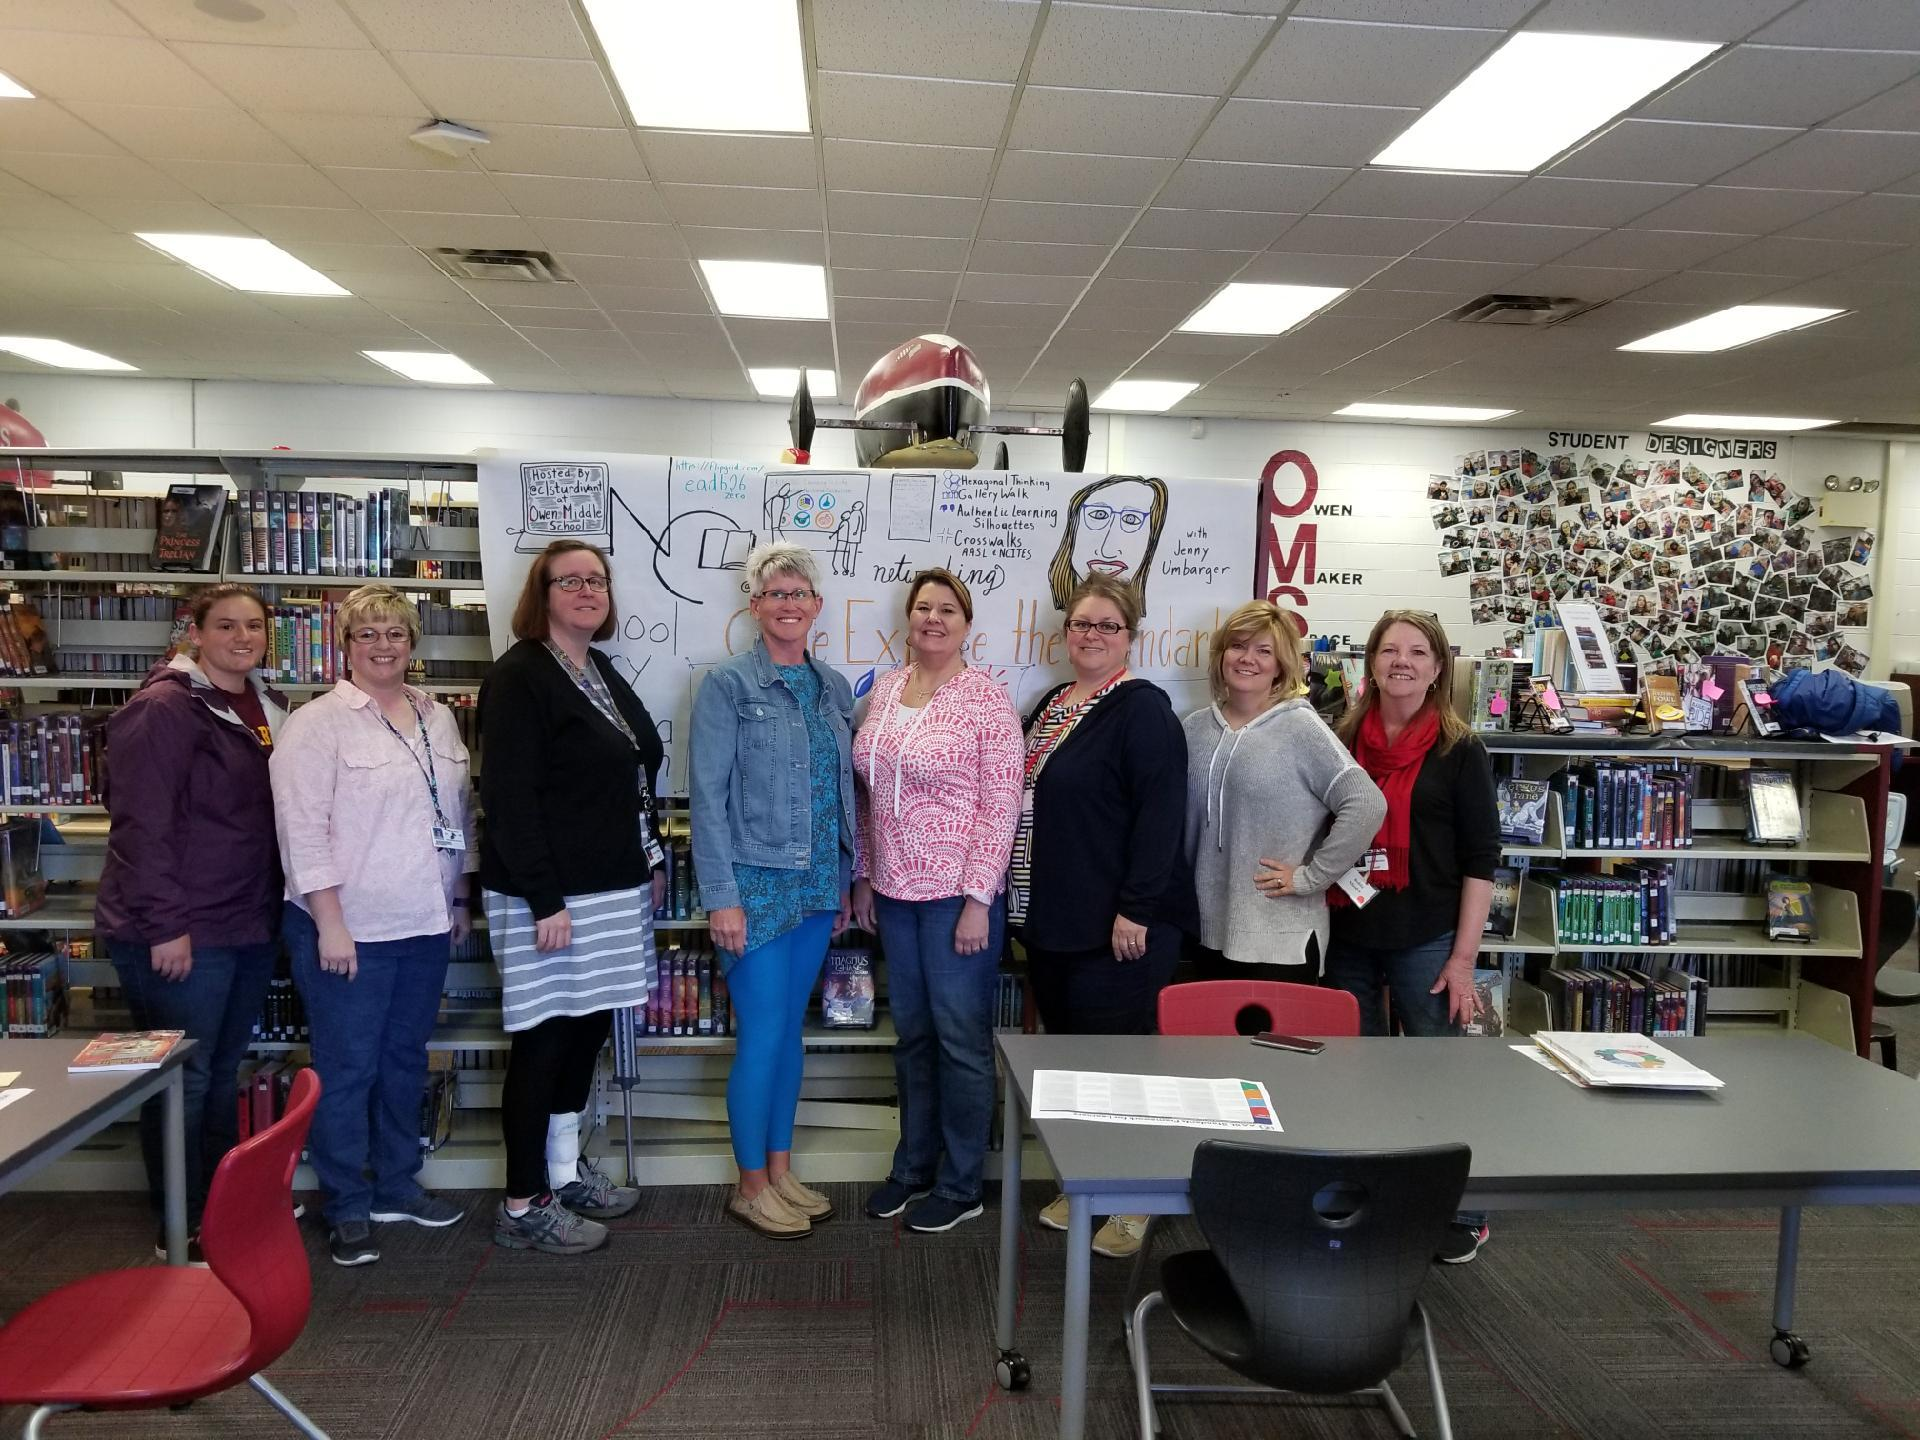 Wilkes County Schools Media Specialists at Regional Workshop